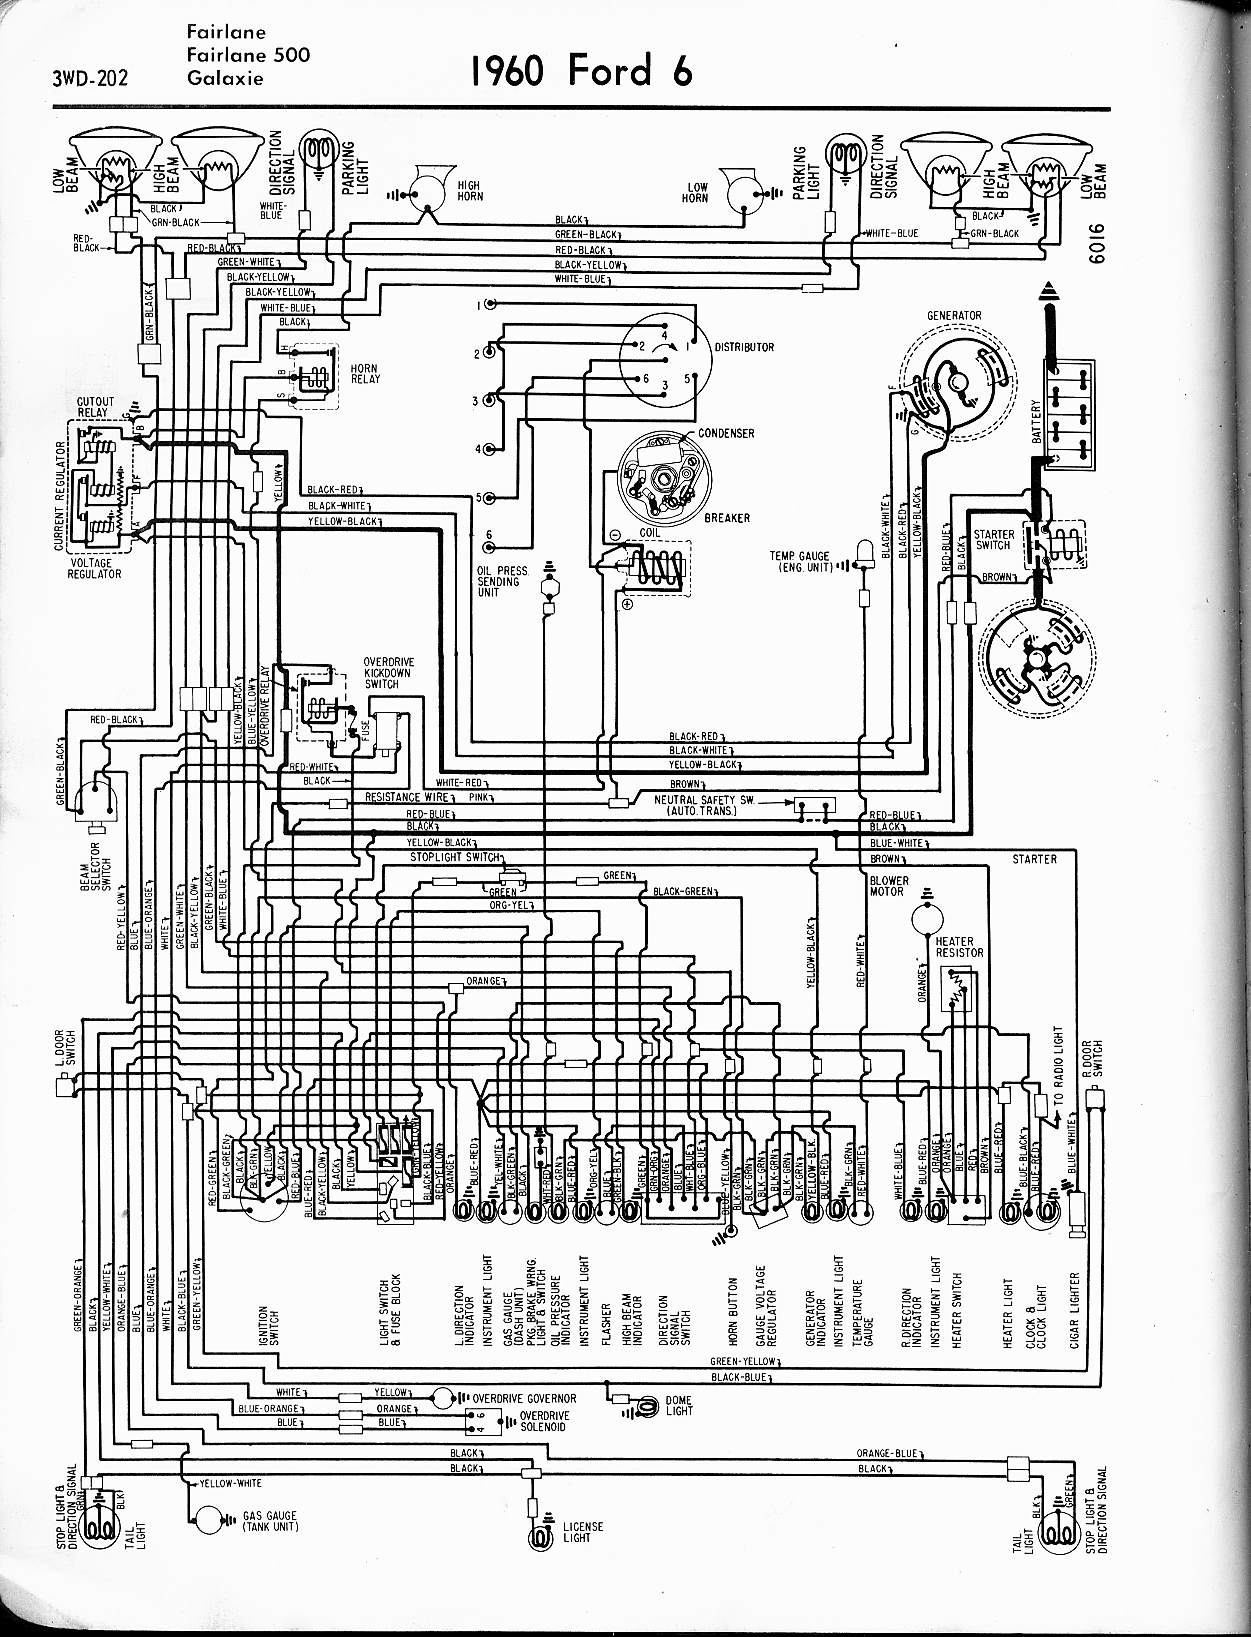 5765 Ford Wiring Diagrams. 1960 6 Cyl Fairlane 500 Galaxie. Ford. 1966 Ford Mustang Starter Relay Wiring At Scoala.co